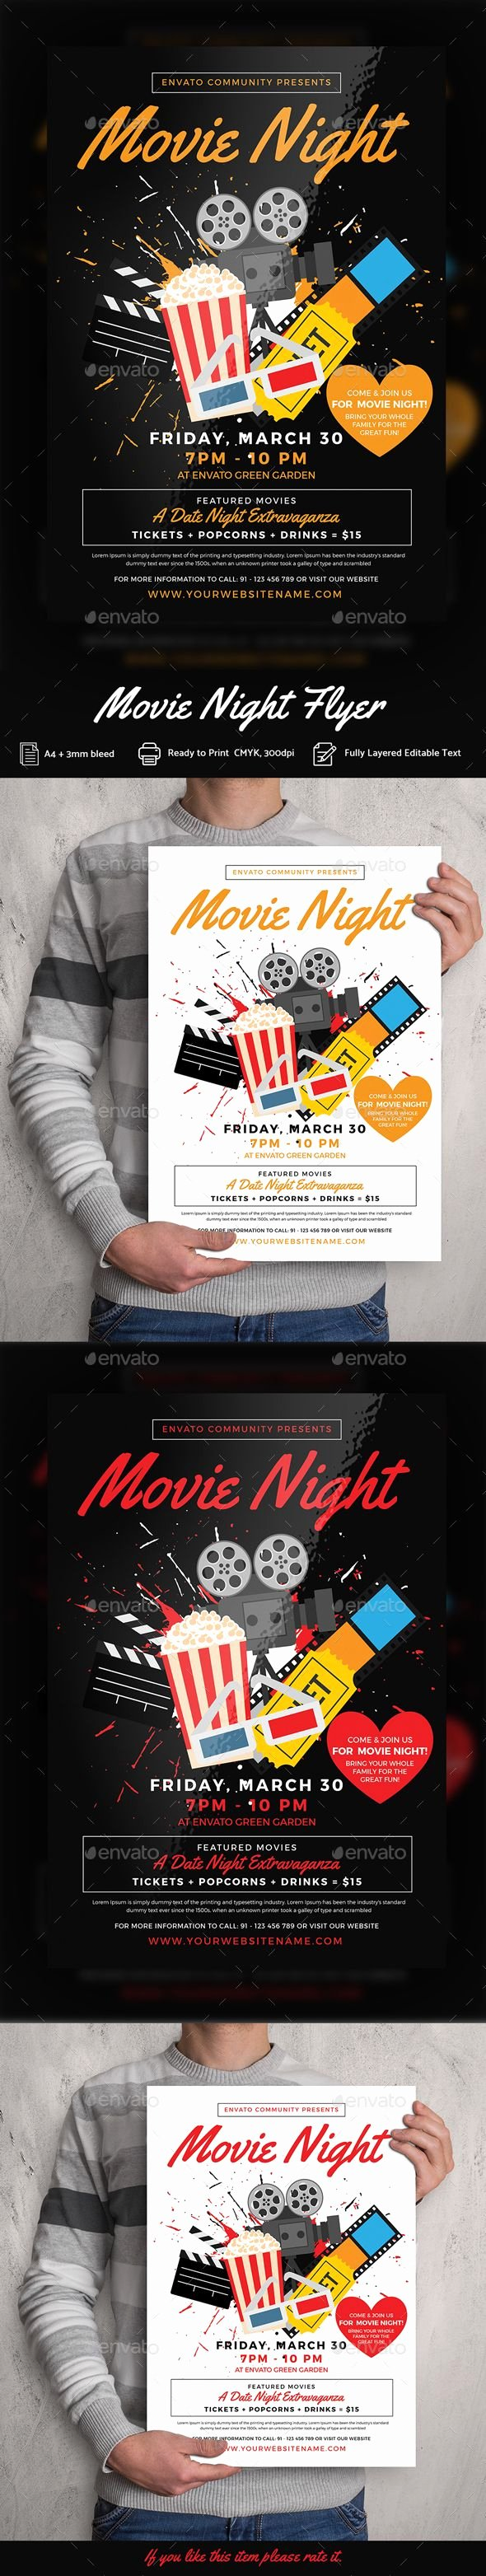 Free Movie Night Flyer Templates Awesome Movie Night Flyer Templates